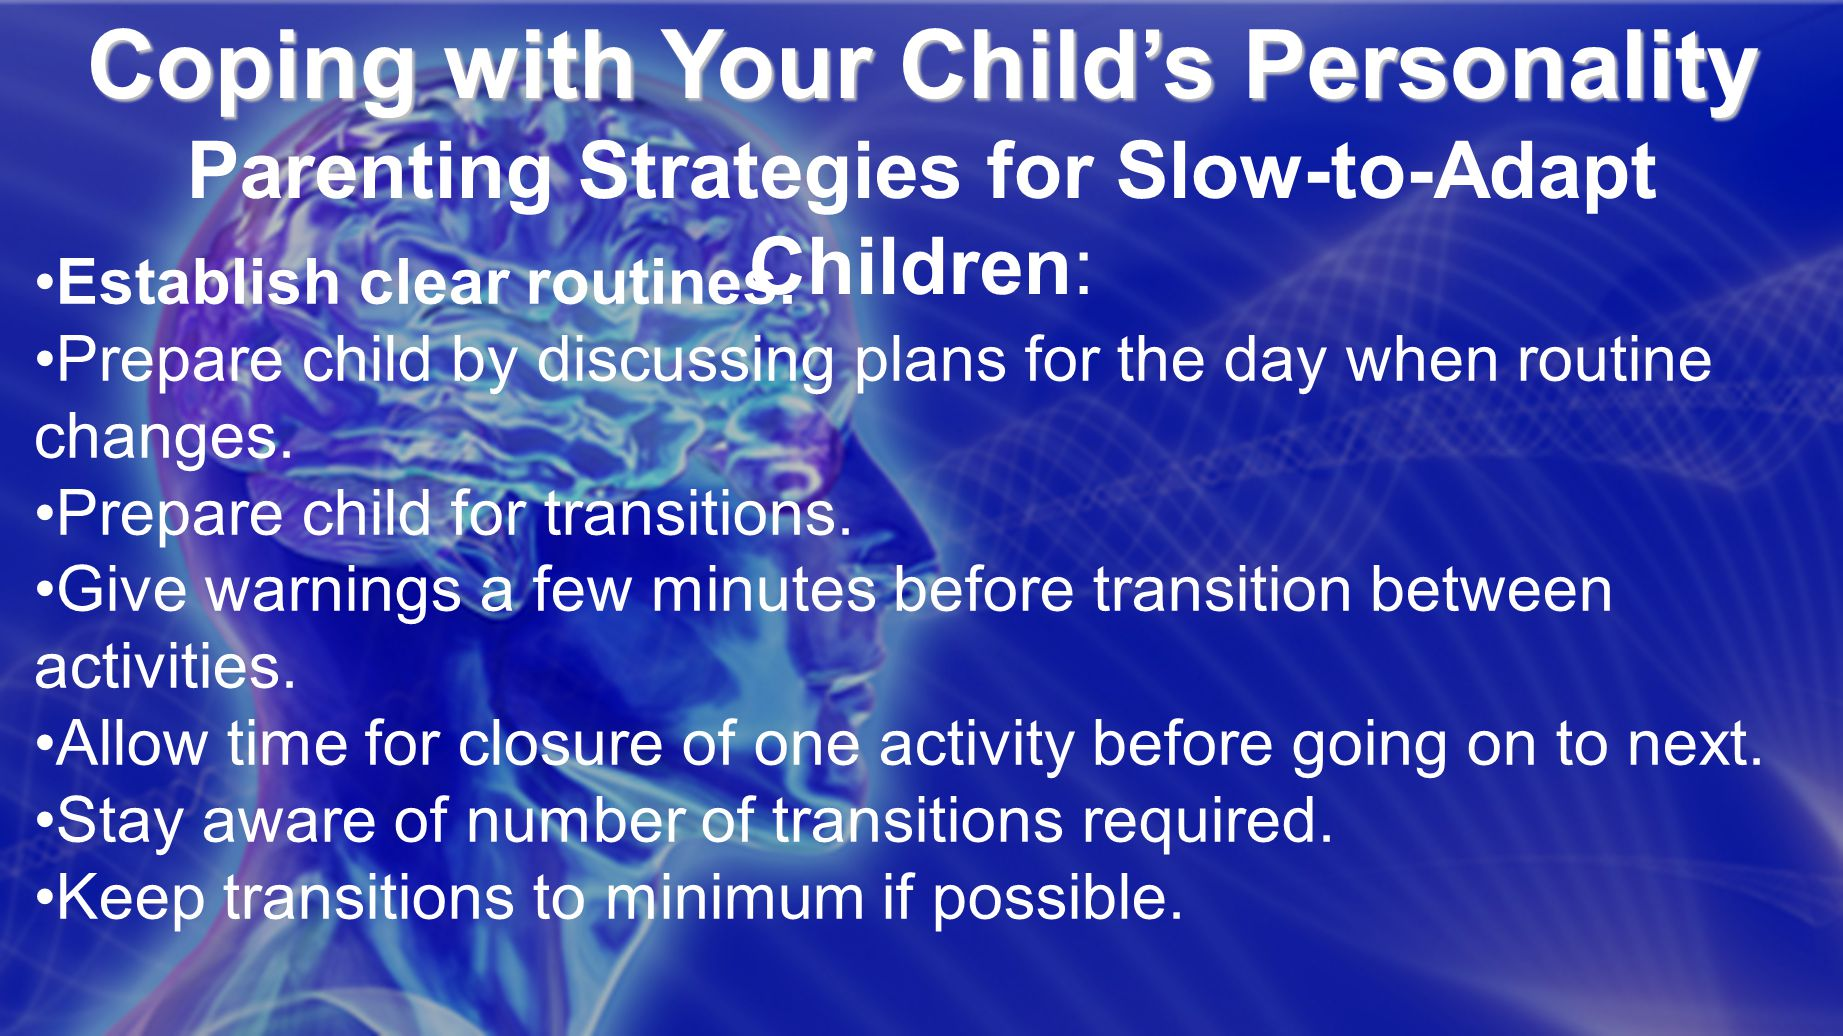 Coping with Your Child's Personality Coping with Your Child's Personality Parenting Strategies for Slow-to-Adapt Children: Establish clear routines.